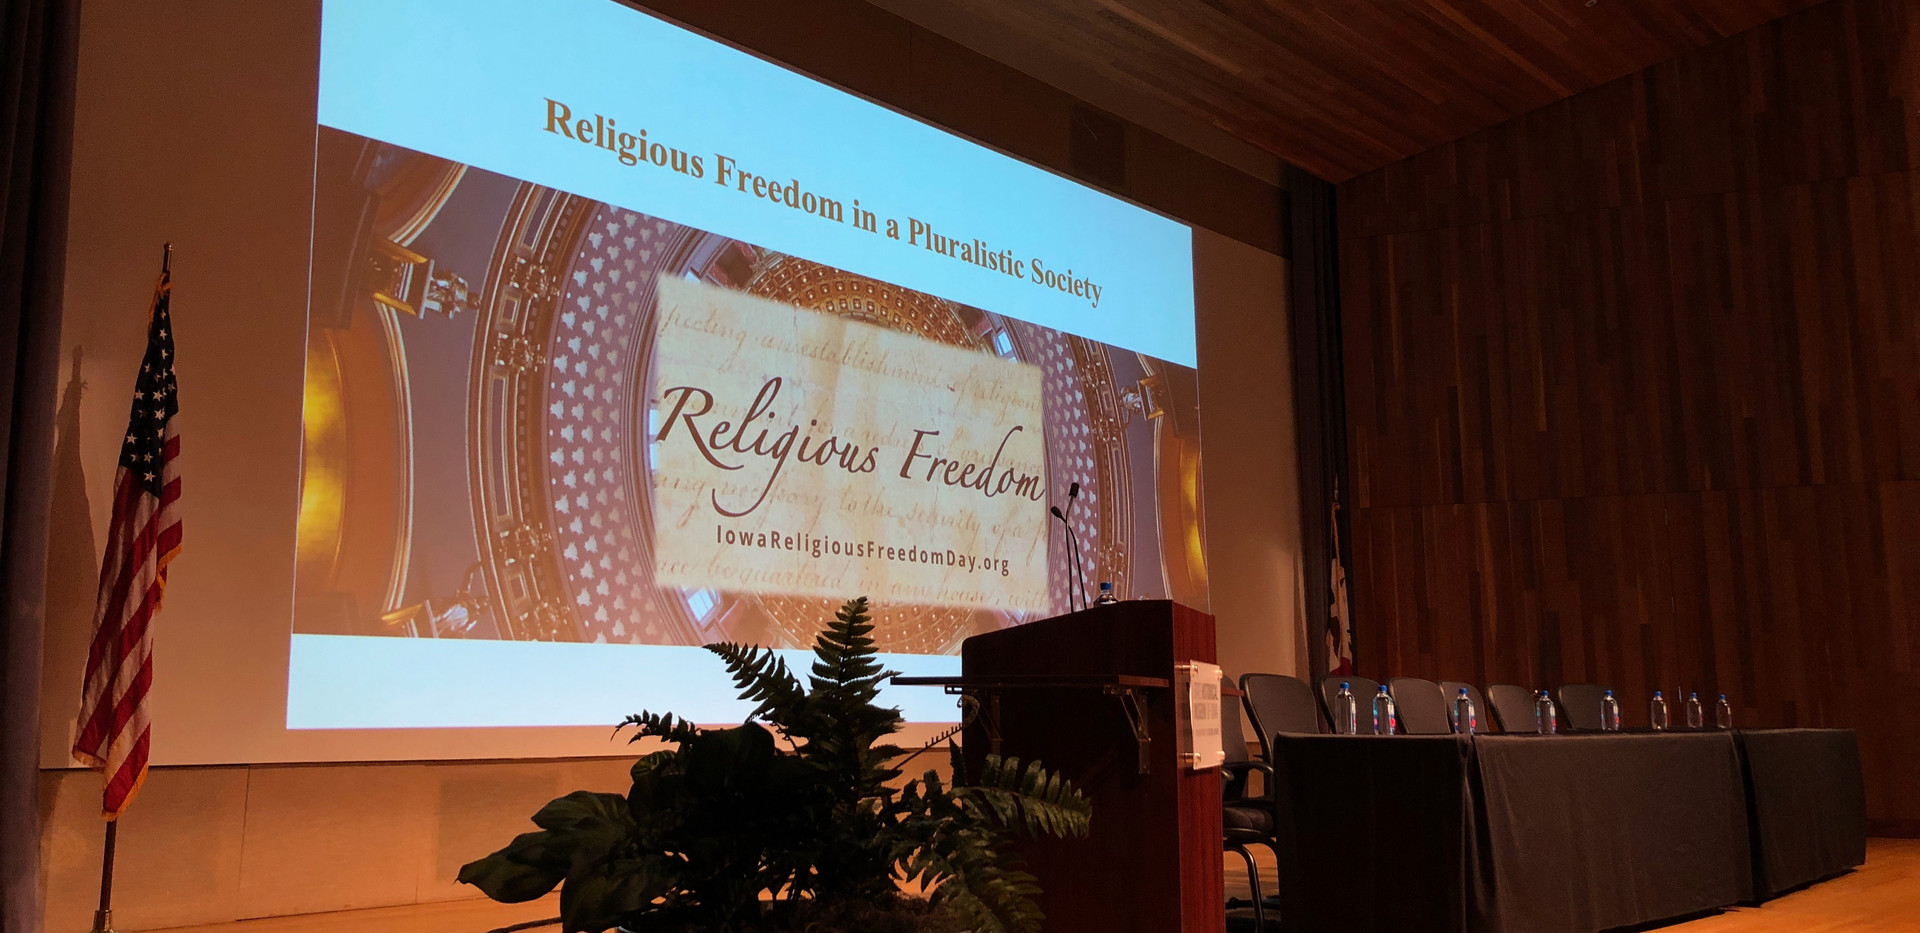 Religious Freedom in a Pluralistic Society